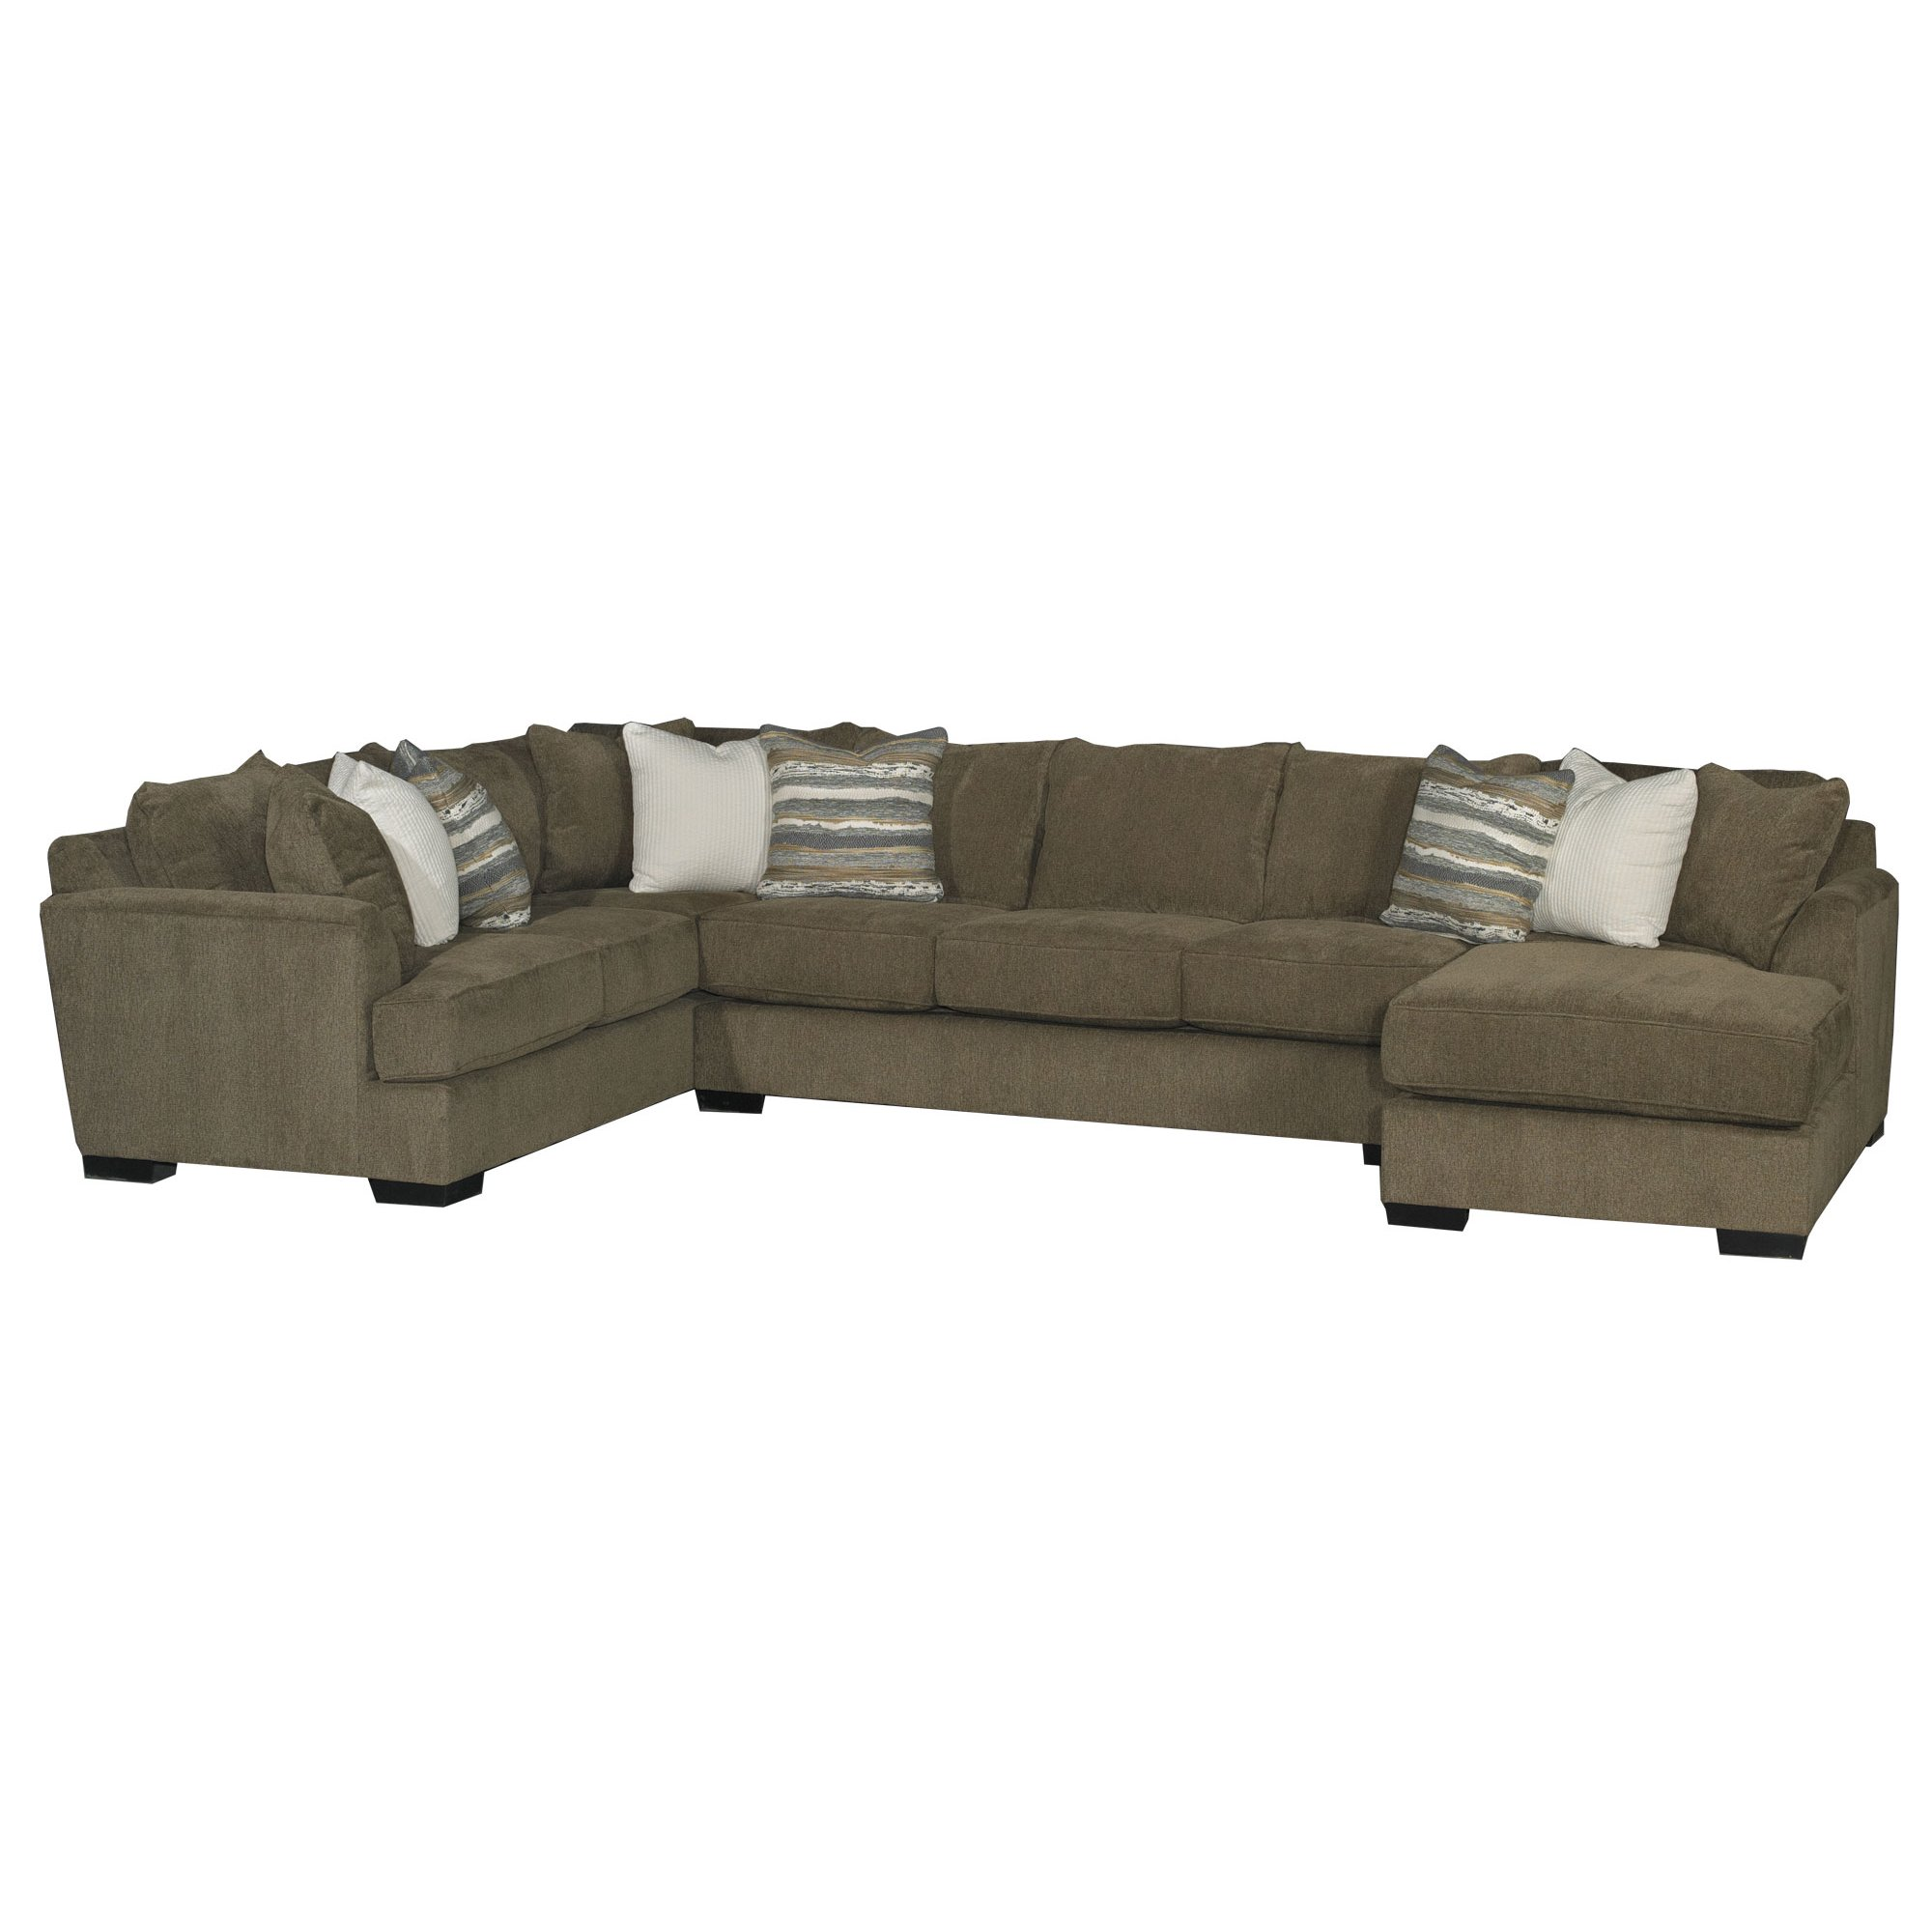 sofa under sofas couch with design additional room innovative sensational www purobrand home beautiful co sectional from